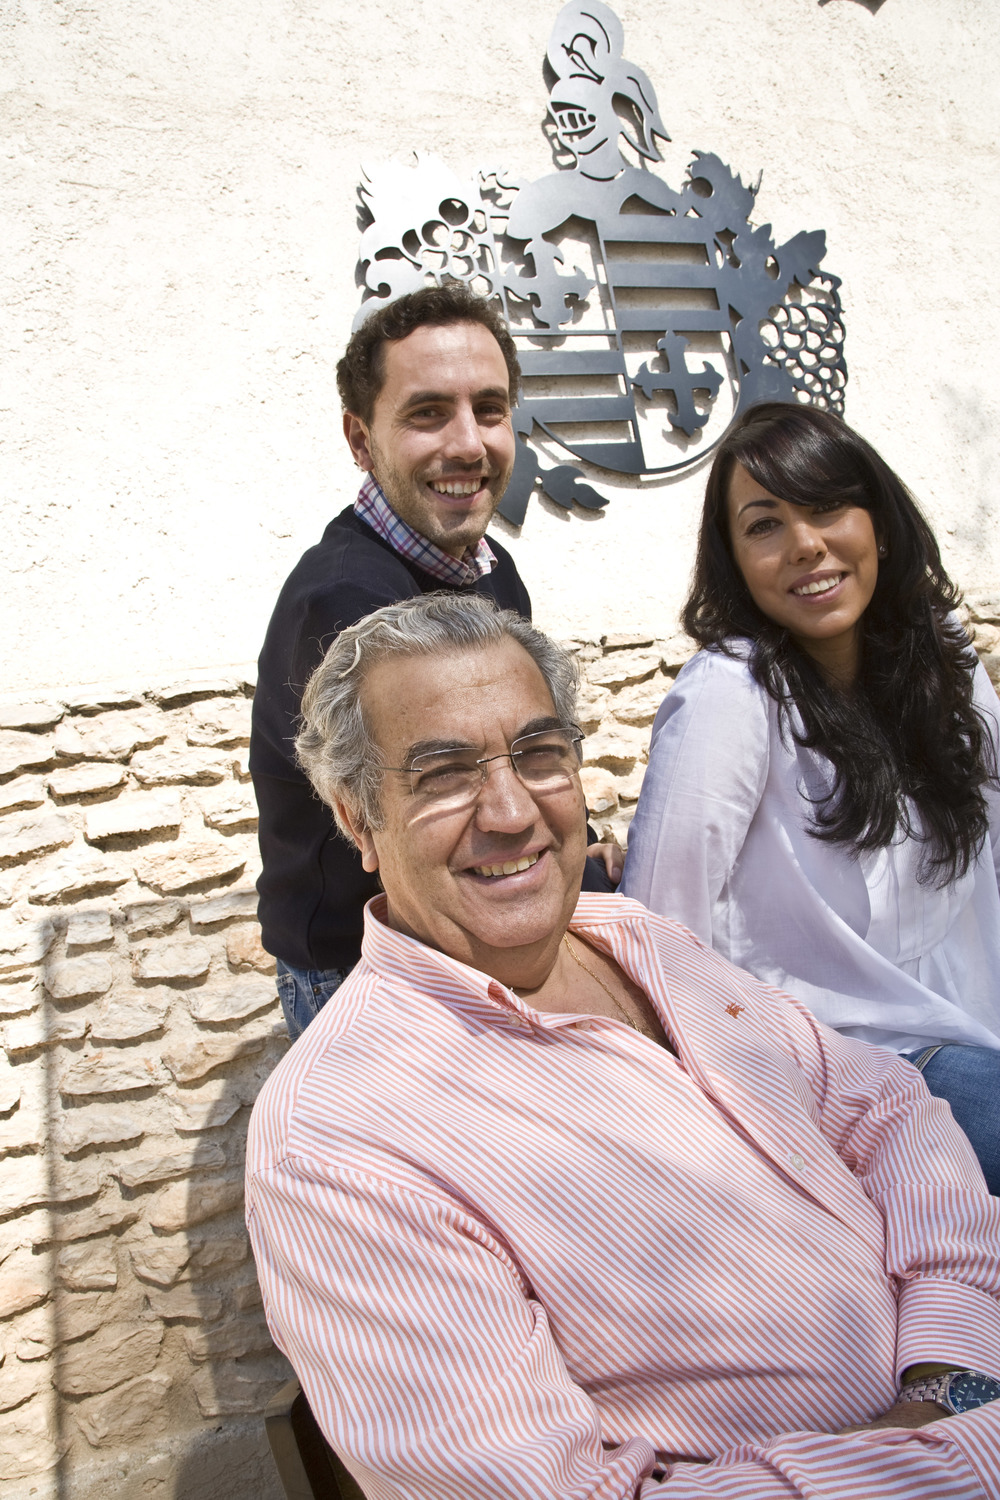 Bienvenido Munoz with his son and daughter